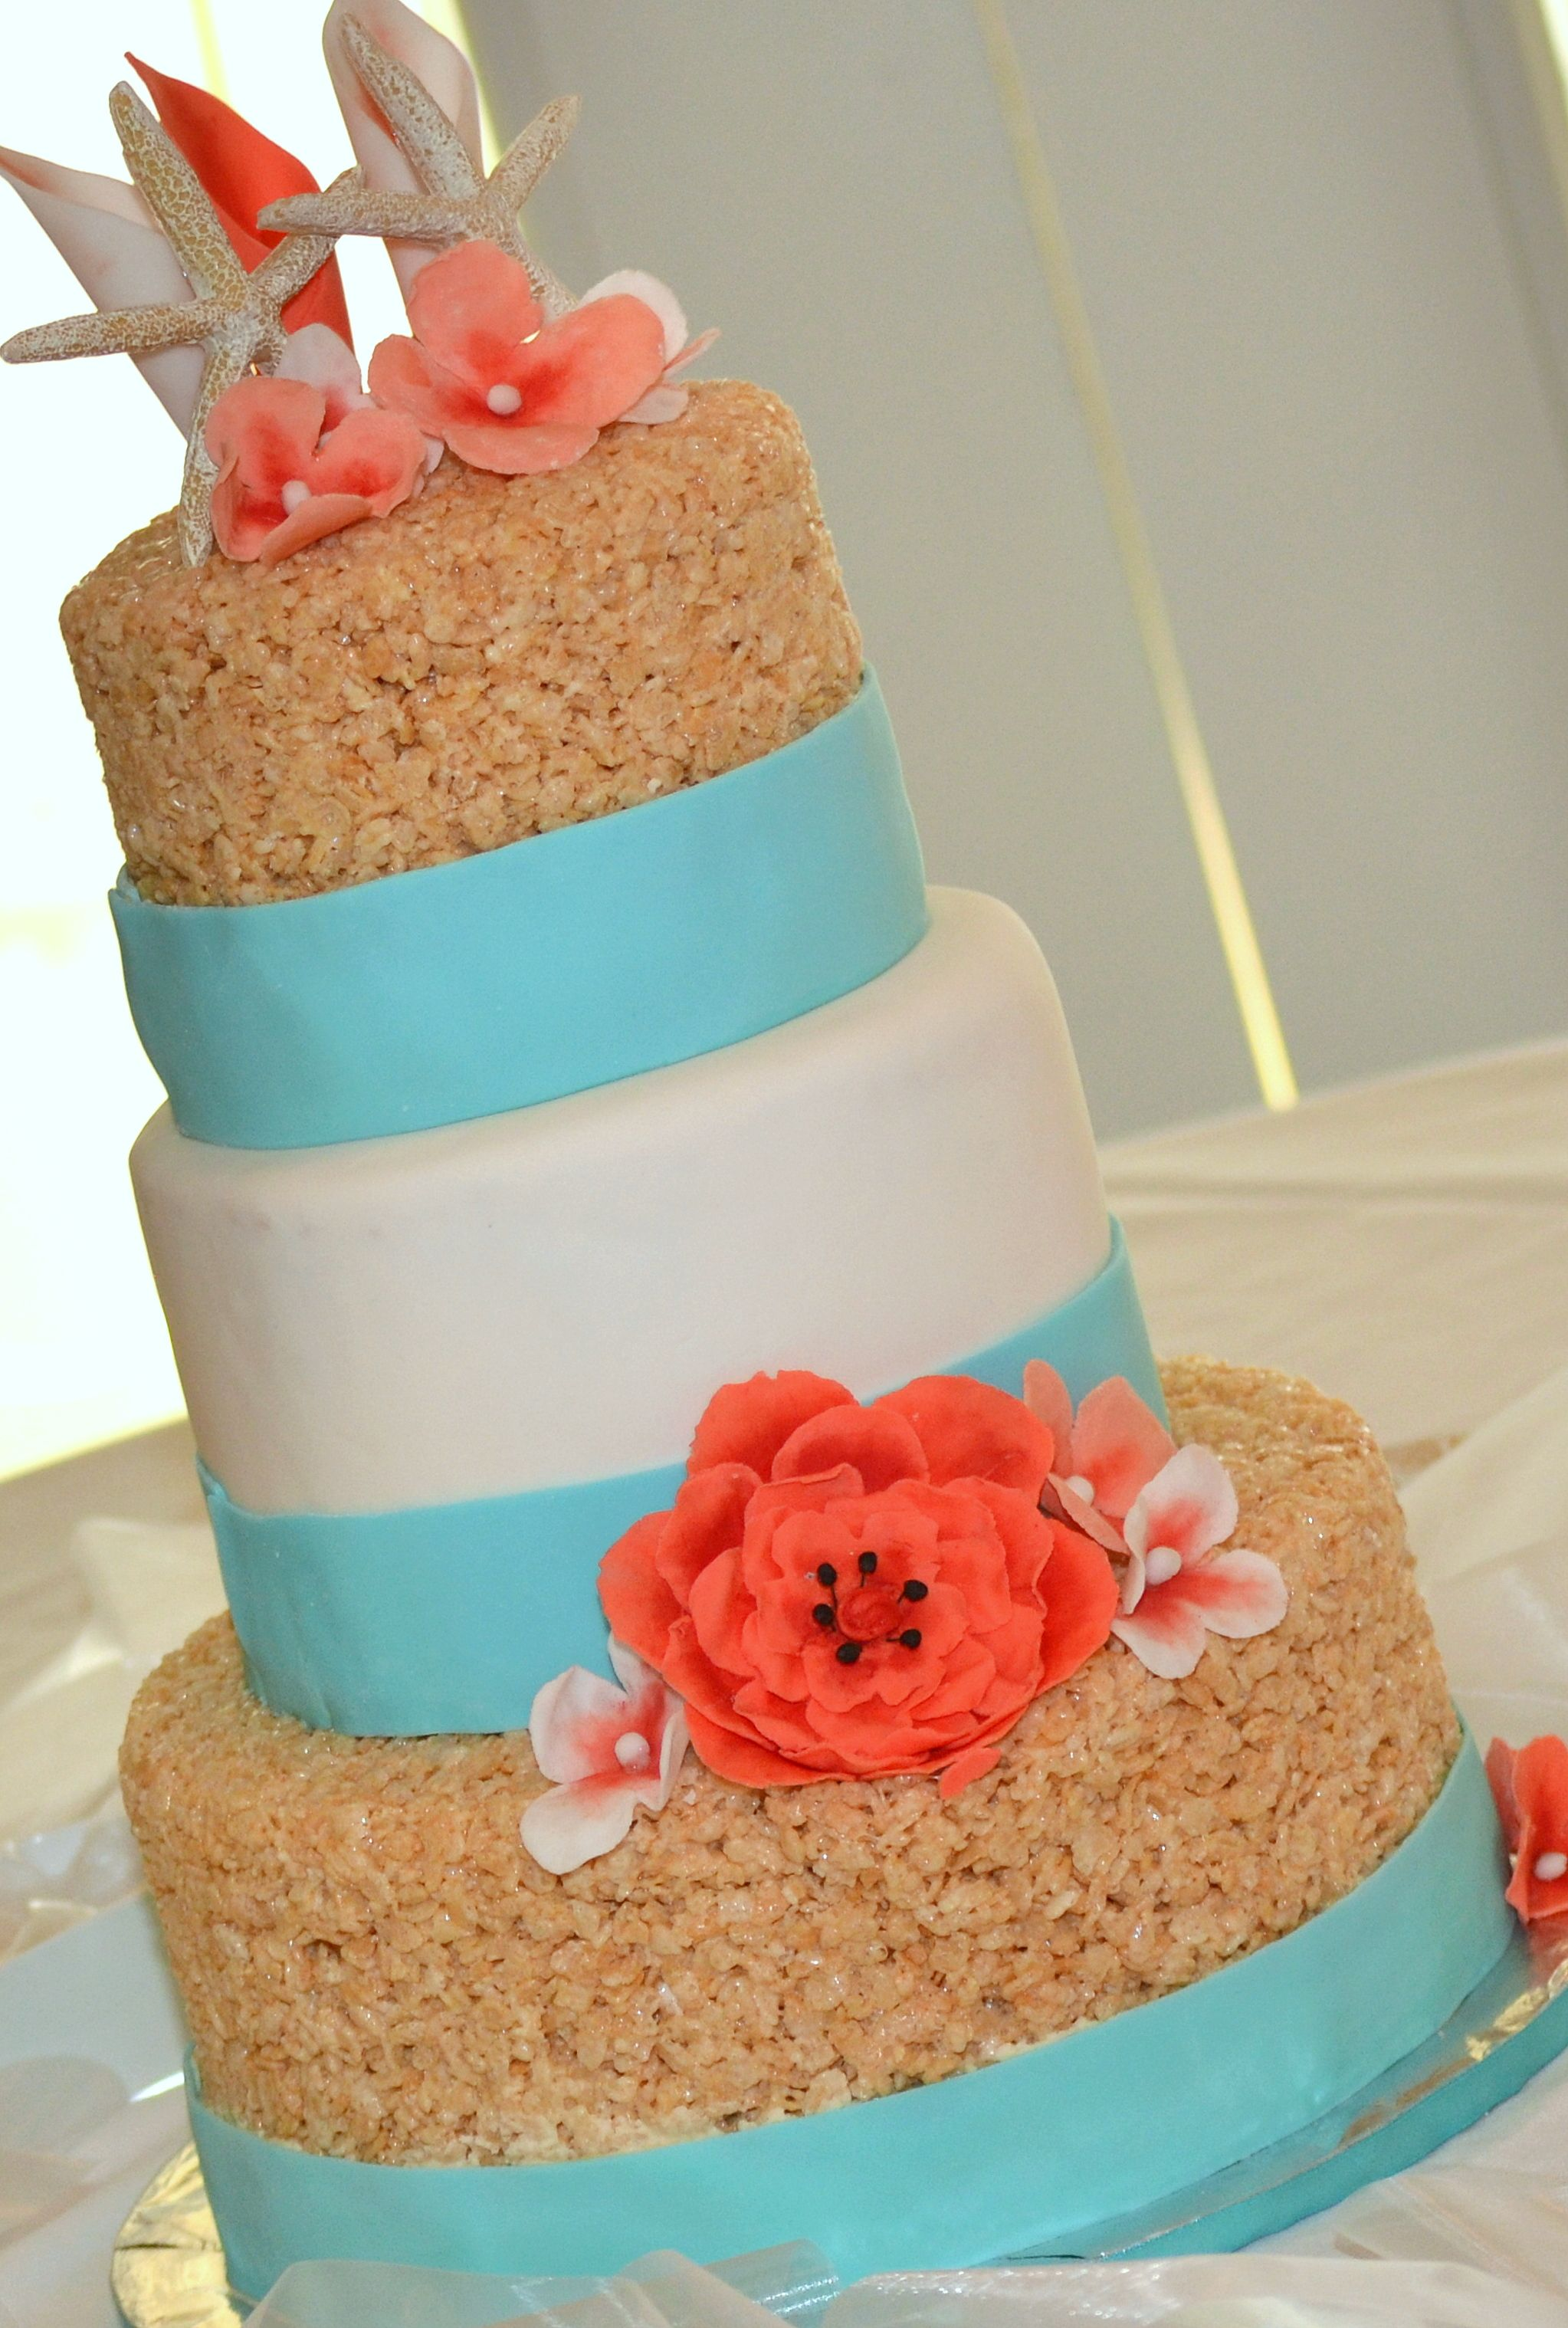 Cake ideas on pinterest pirate cakes marshmallow fondant and - Beach Wedding Cake Rice Krispie Treat Cake With Marshmallow Fondant Or Could Just Do With Colors And Regular Cake